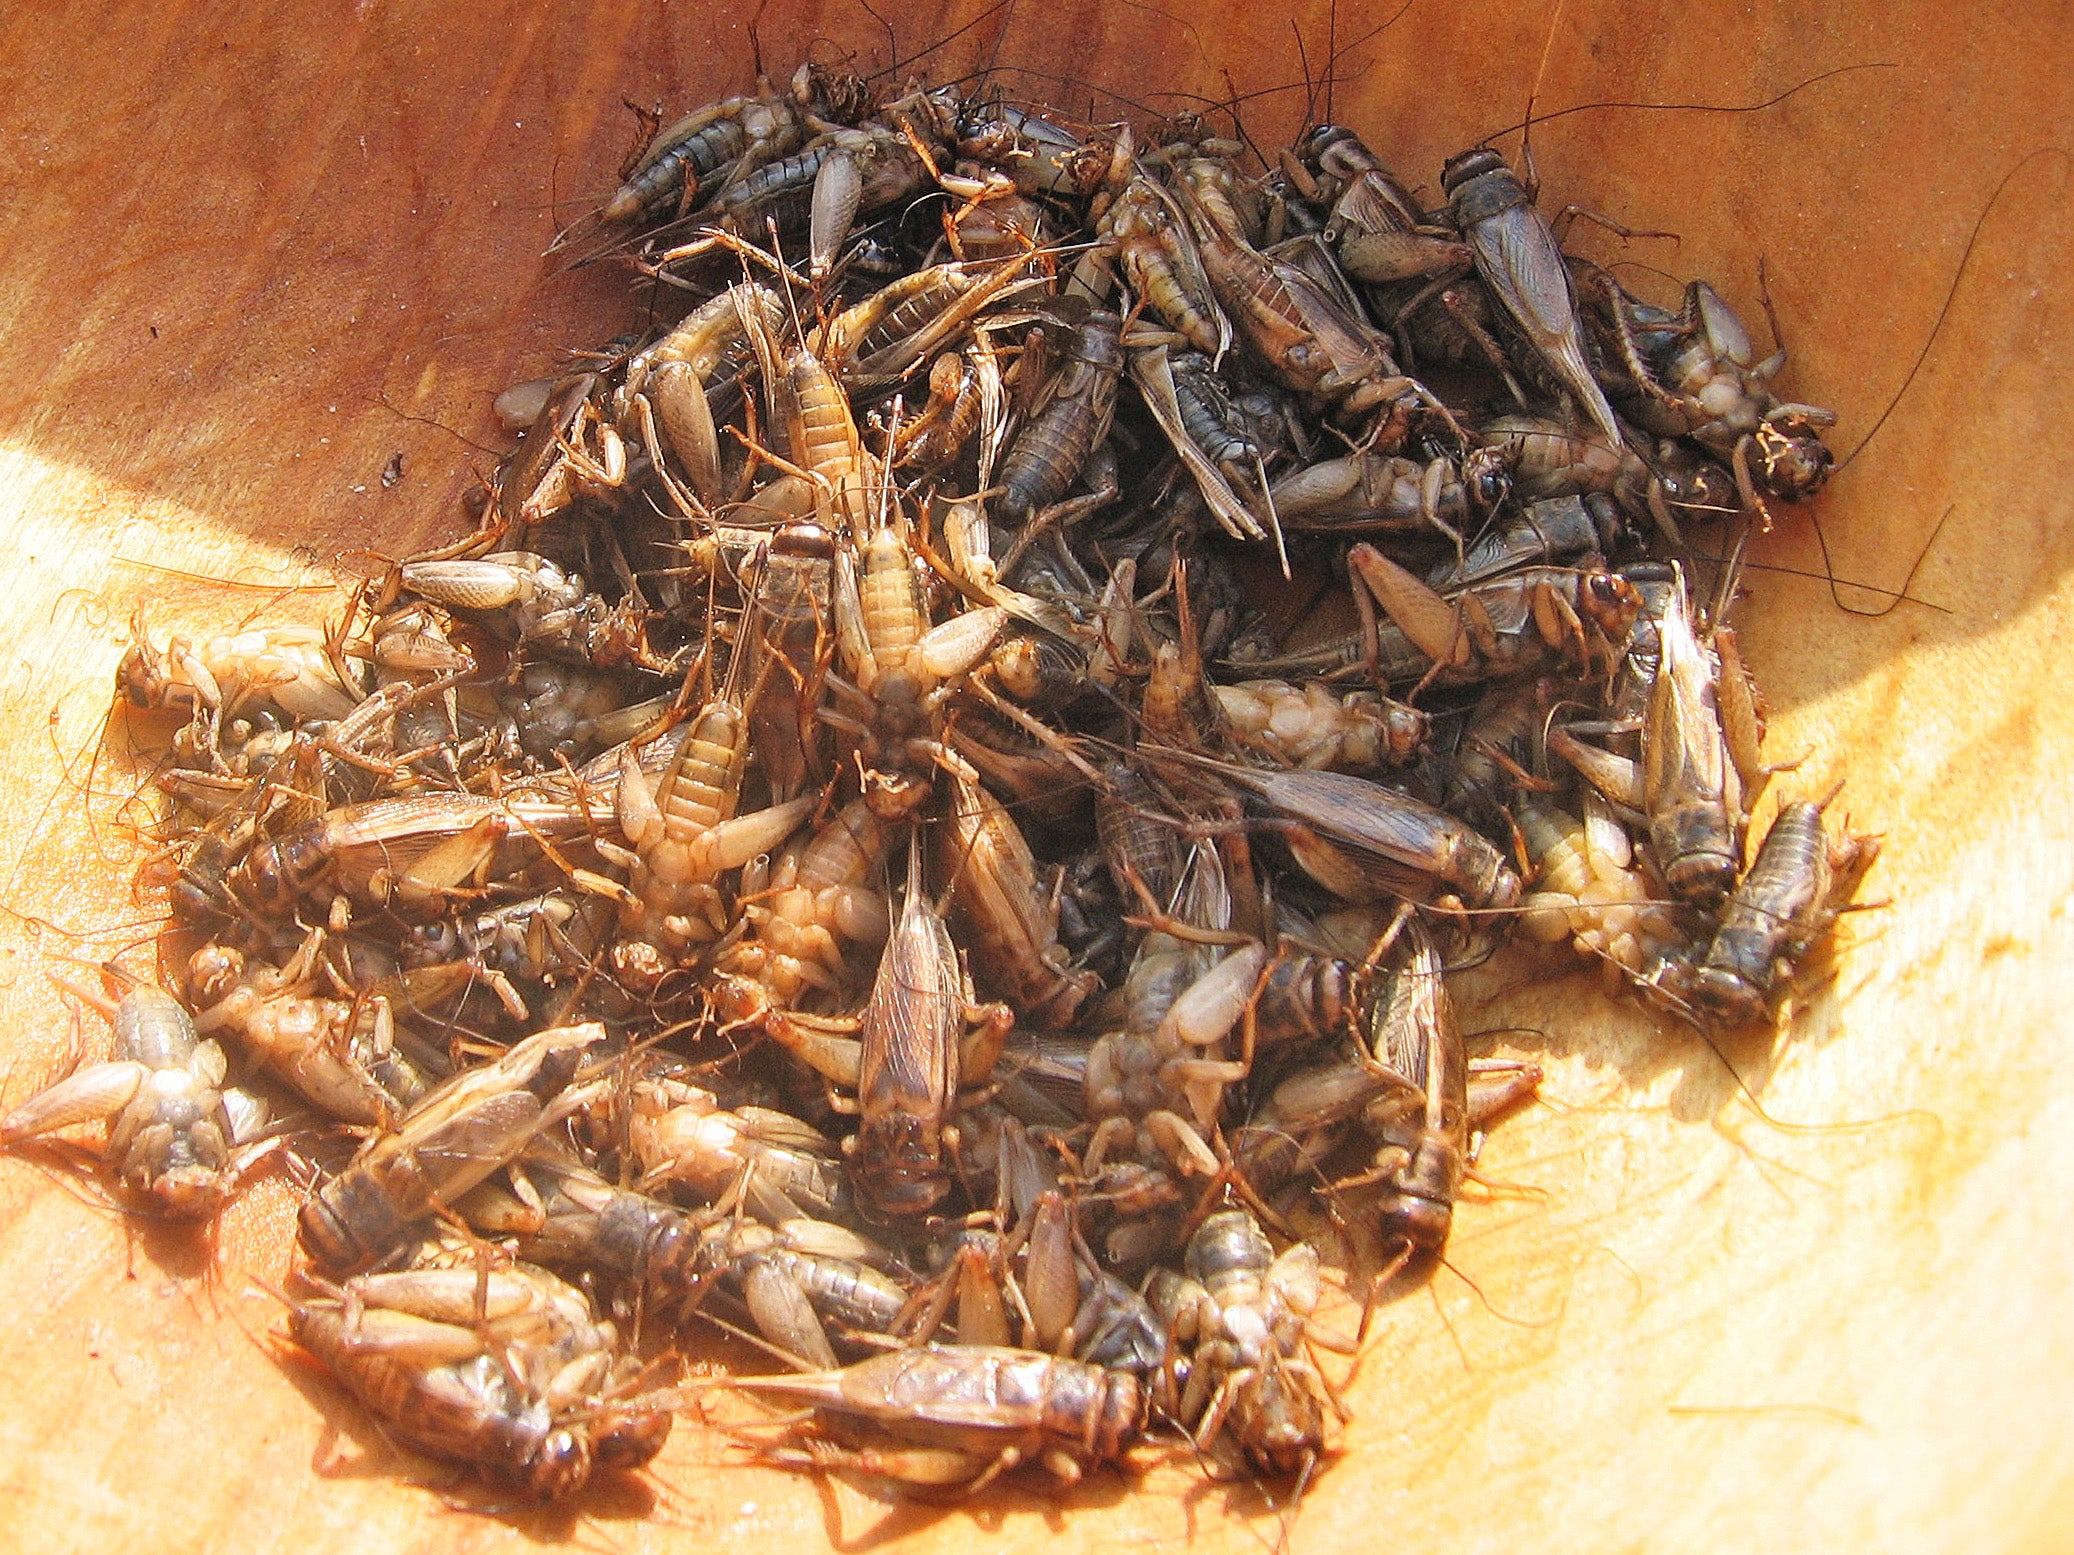 The Environmental Benefits Of Eating Crickets Vs. Chicken: It's Complicated